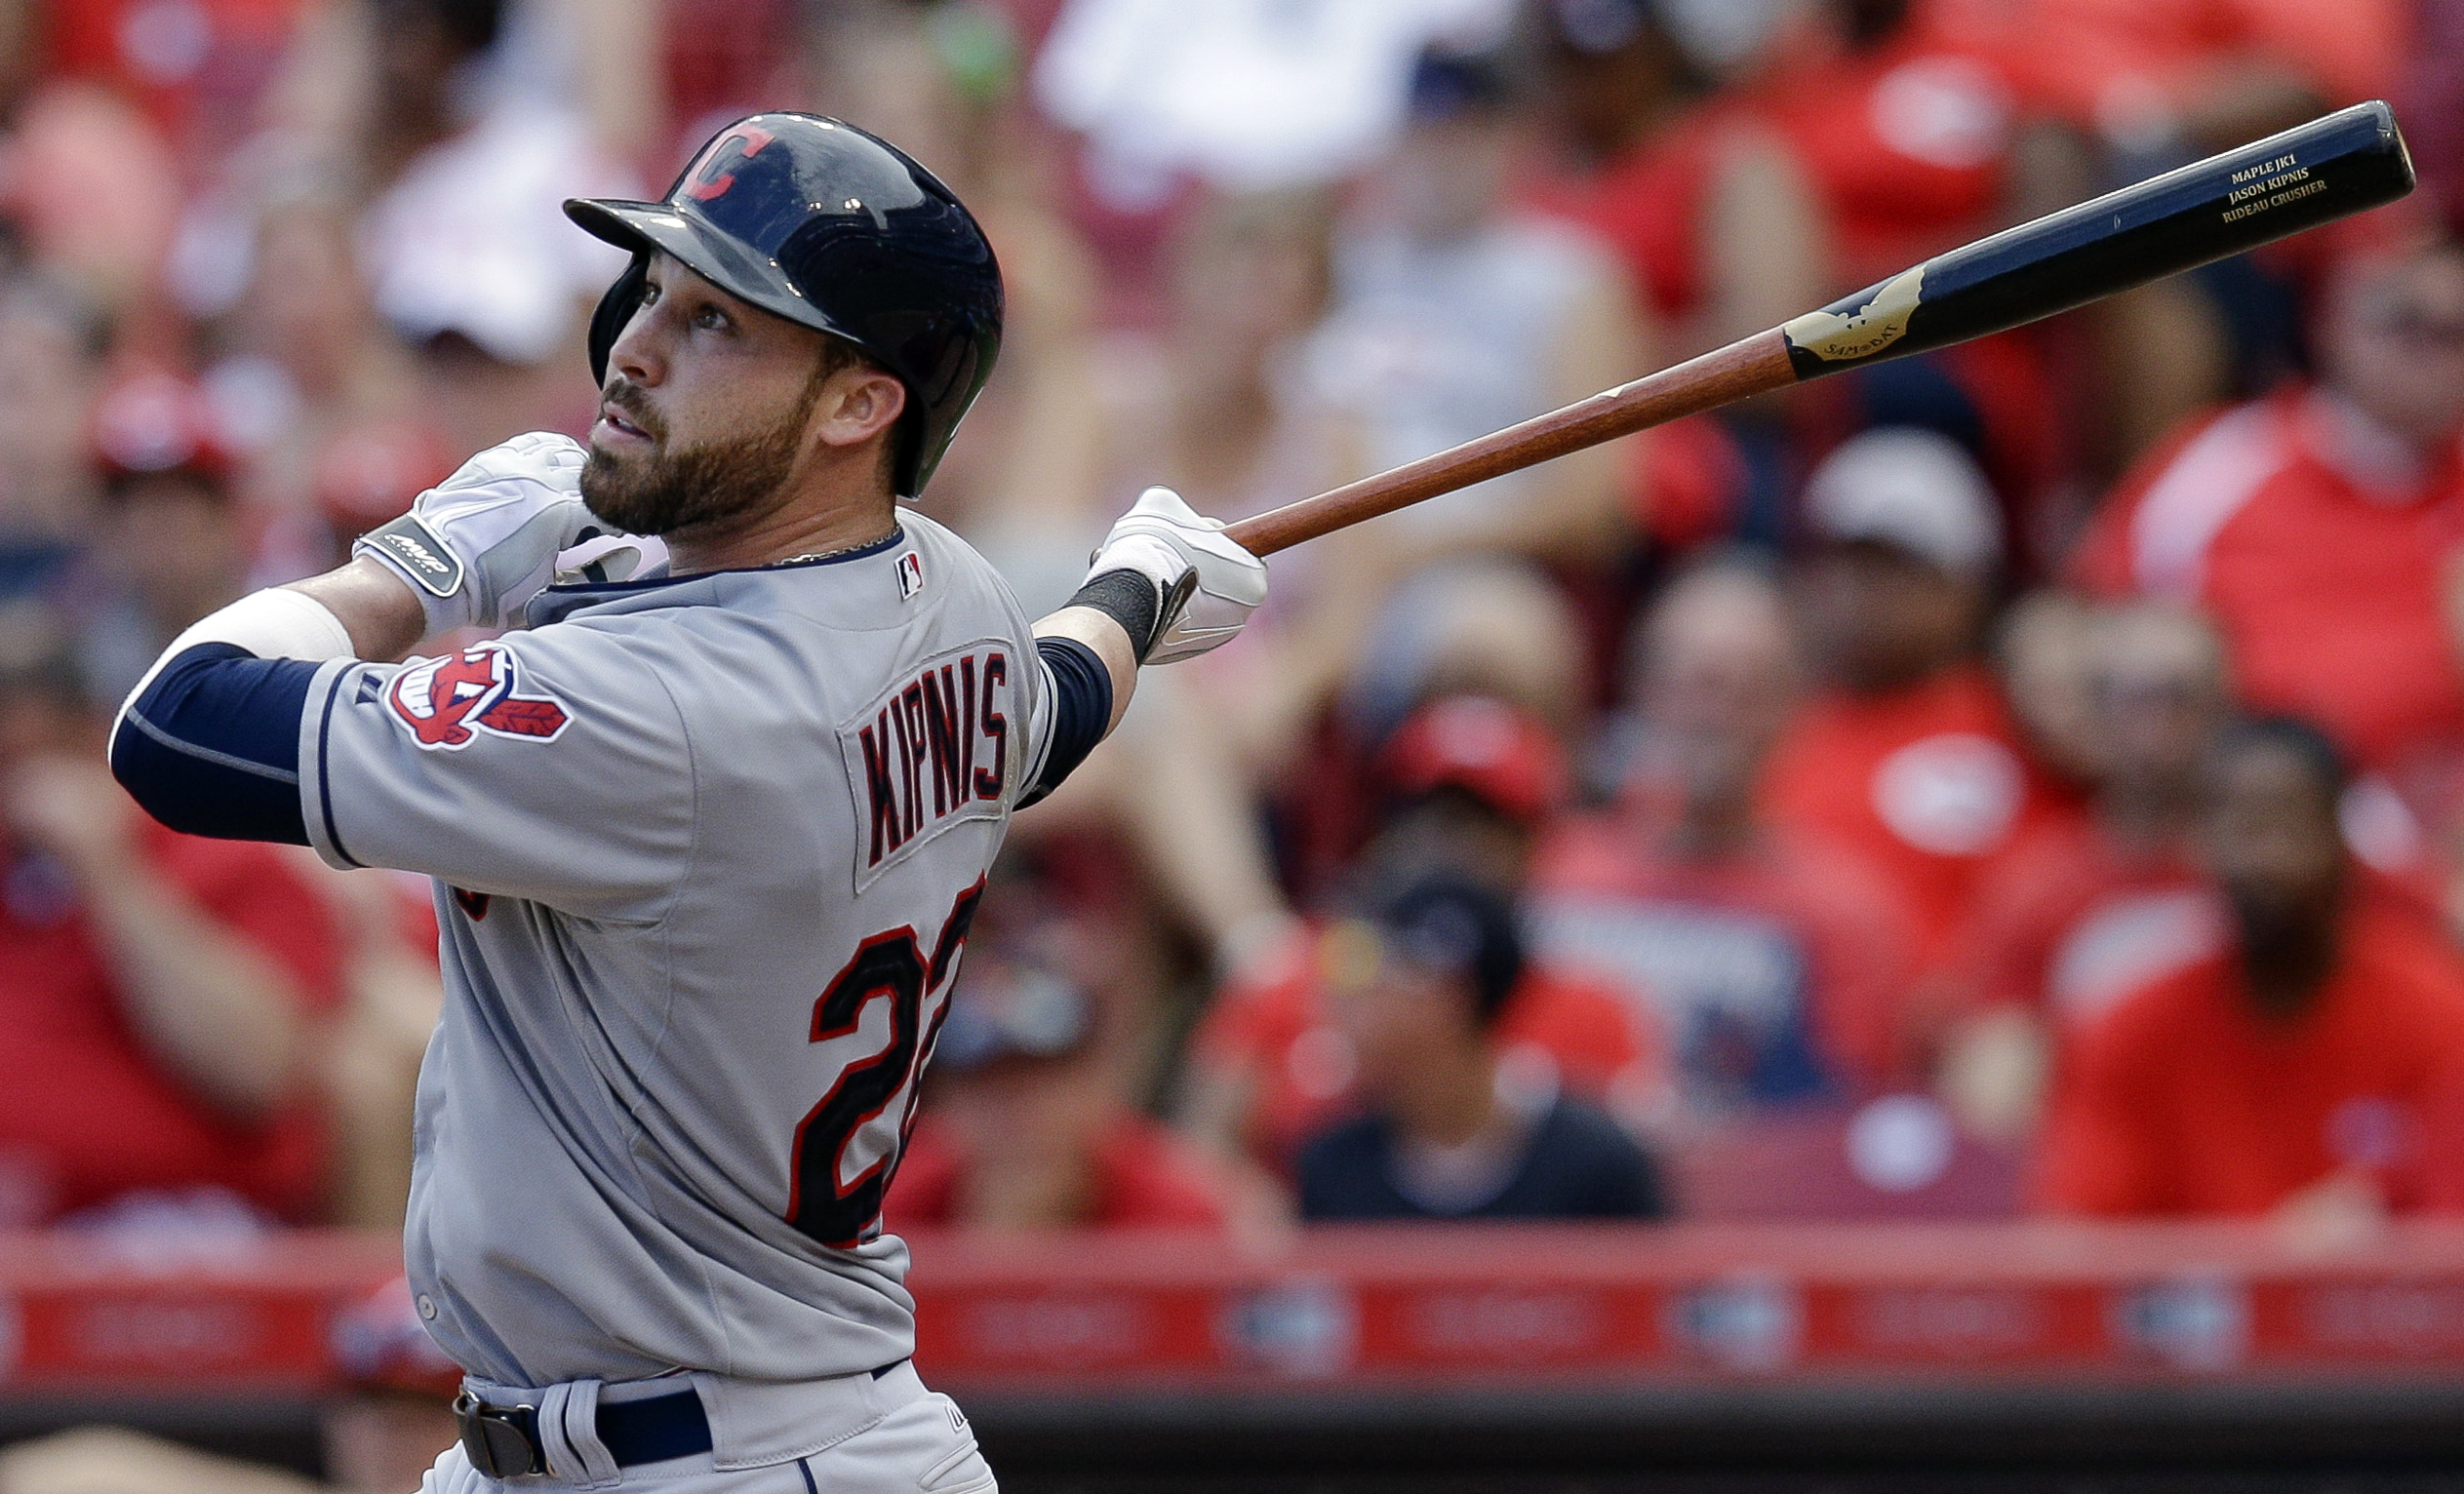 Cleveland Indians' Jason Kipnis hits a sacrifice fly off Cincinnati Reds relief pitcher Pedro Villarreal to drive in Michael Bourn in the eleventh inning of a baseball game, Sunday, July 19, 2015, in Cincinnati. The Indians won 5-3. (AP Photo/John Minchil